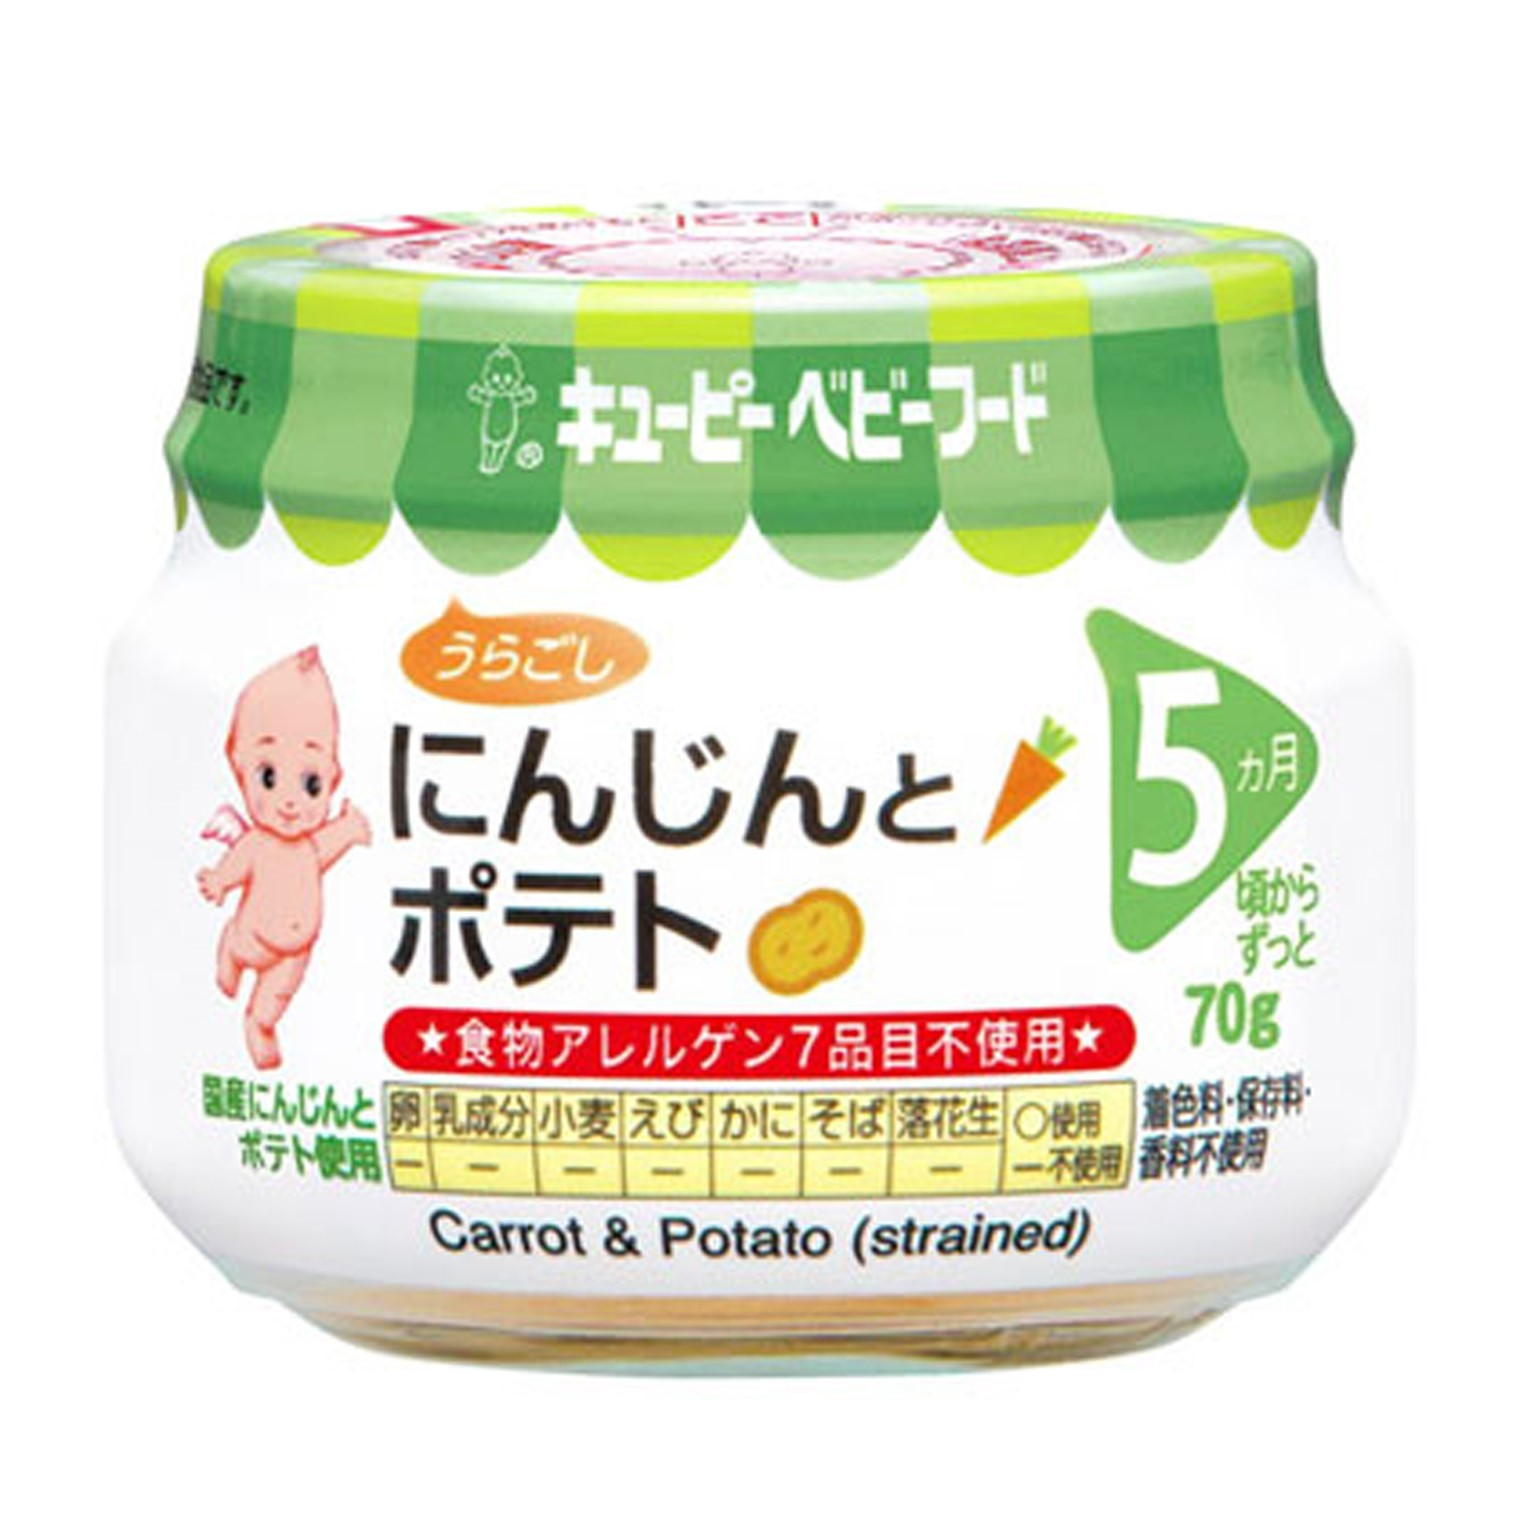 baby-fairKEWPIE A-12 CARROT & POTATO (STRAINED)